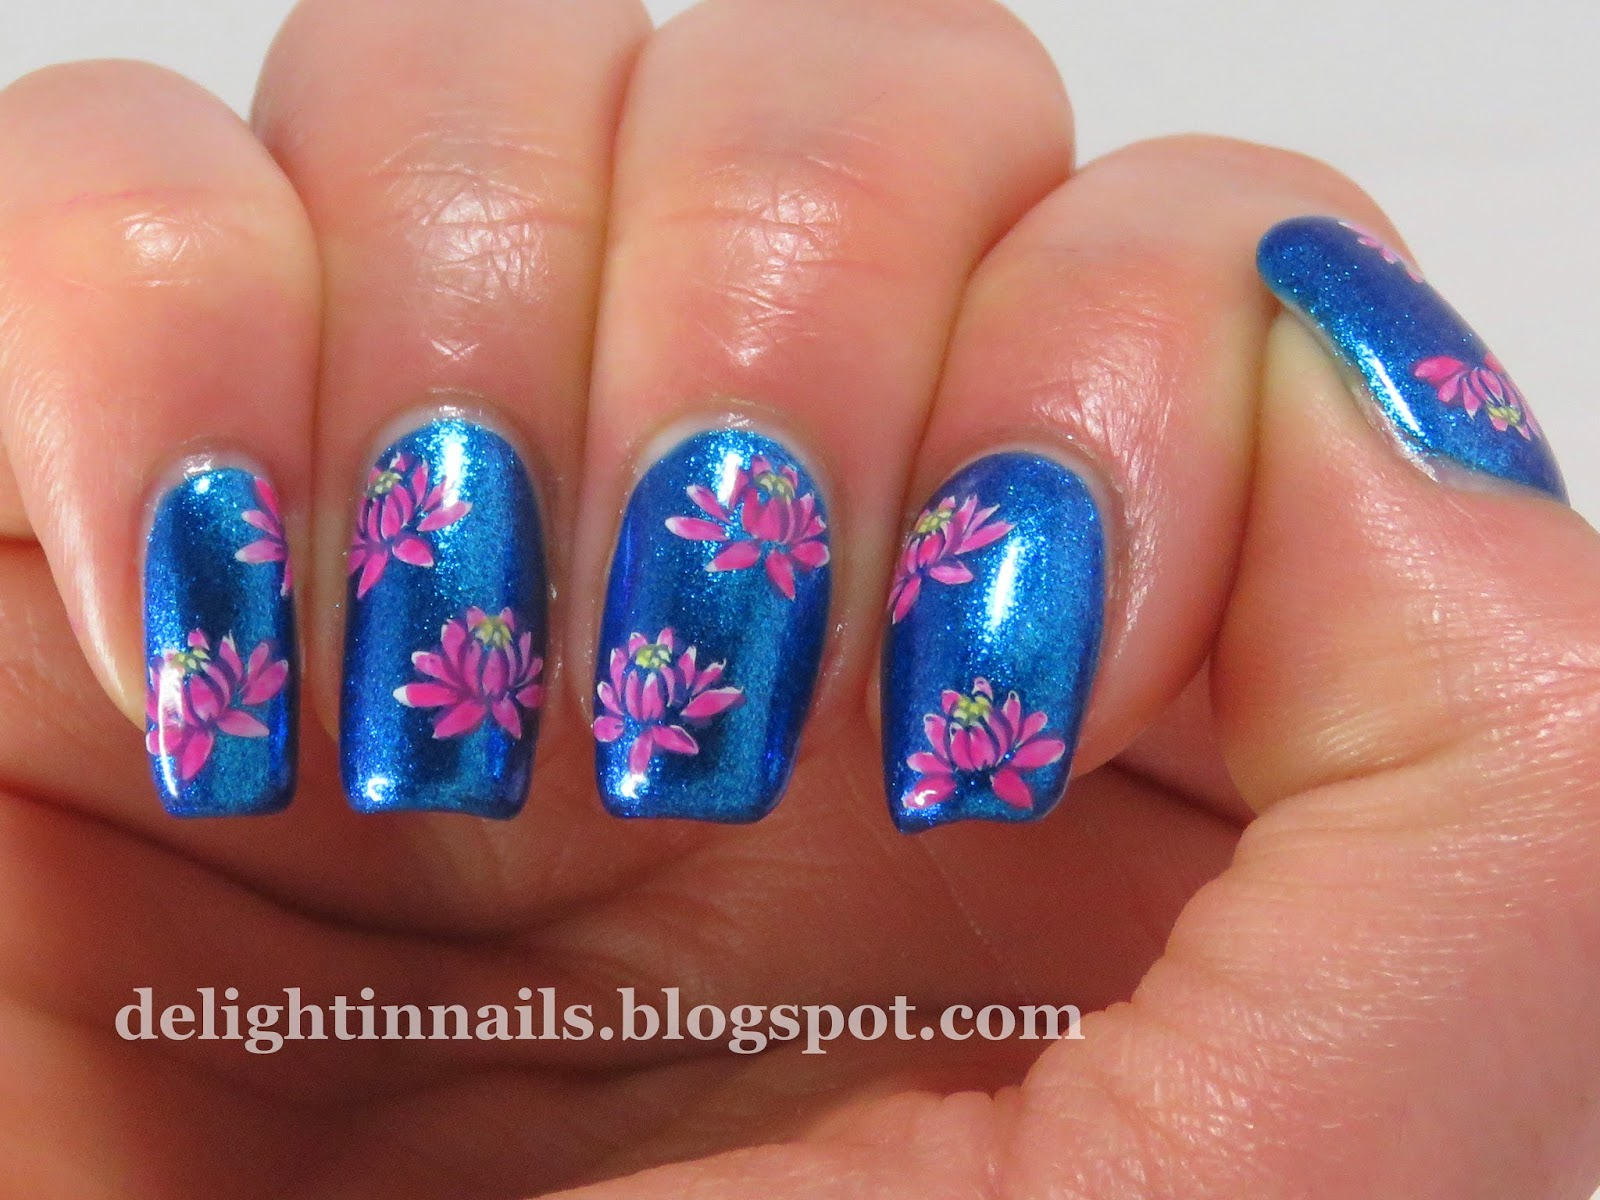 Delight in nails lotus nailart over butter london airy fairy lotus nailart over butter london airy fairy dhlflorist Image collections